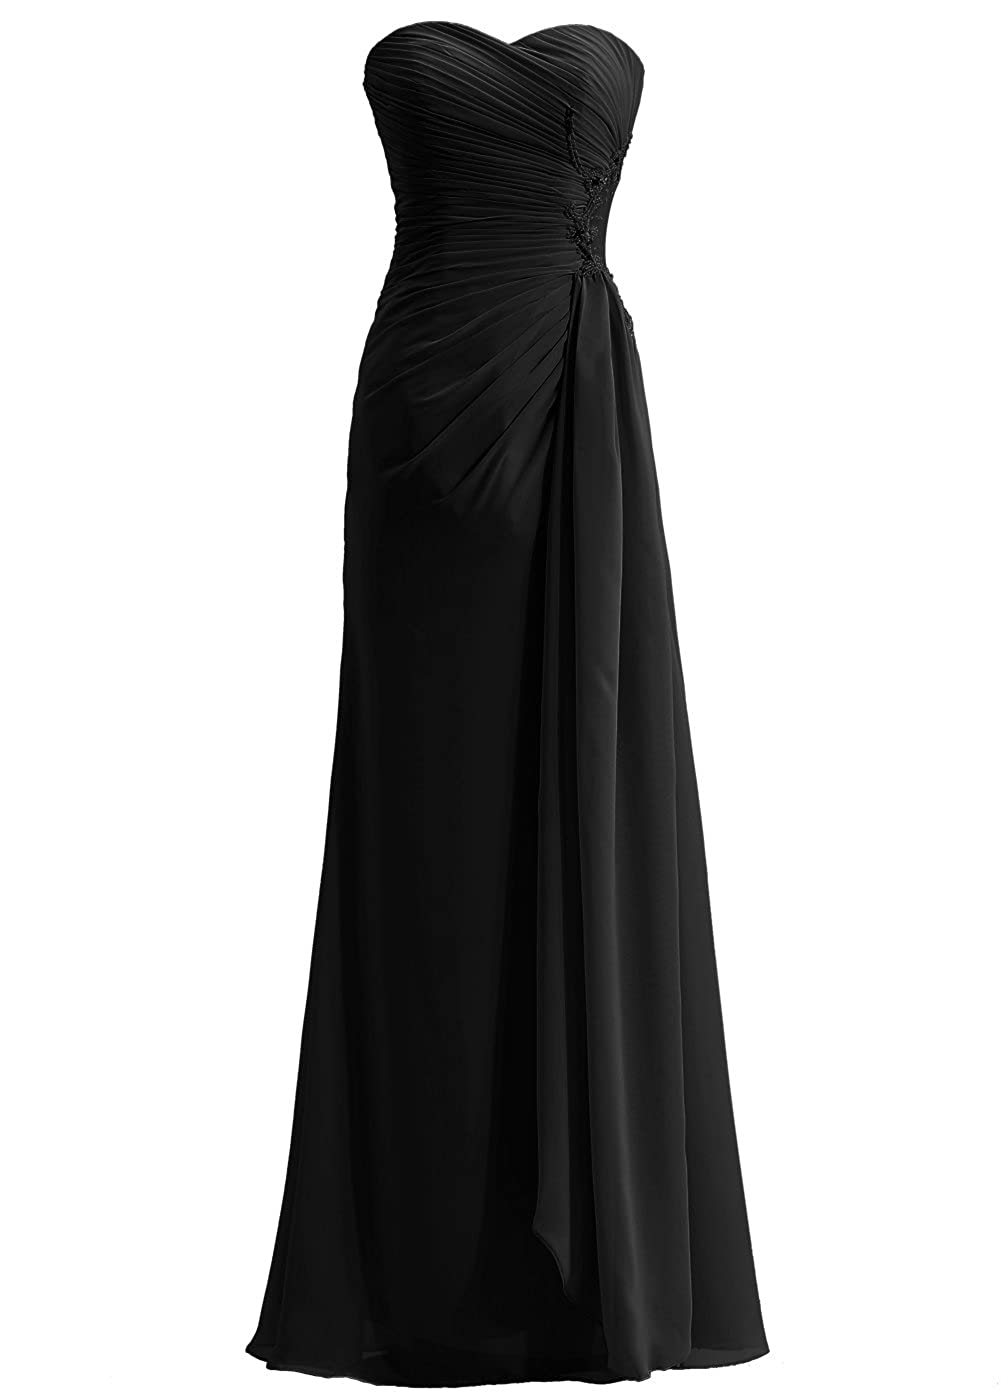 3a59d372589b Callmelady Sweetheart Chiffon Prom Dresses Long Evening Gowns for Women  Formal: Amazon.co.uk: Clothing